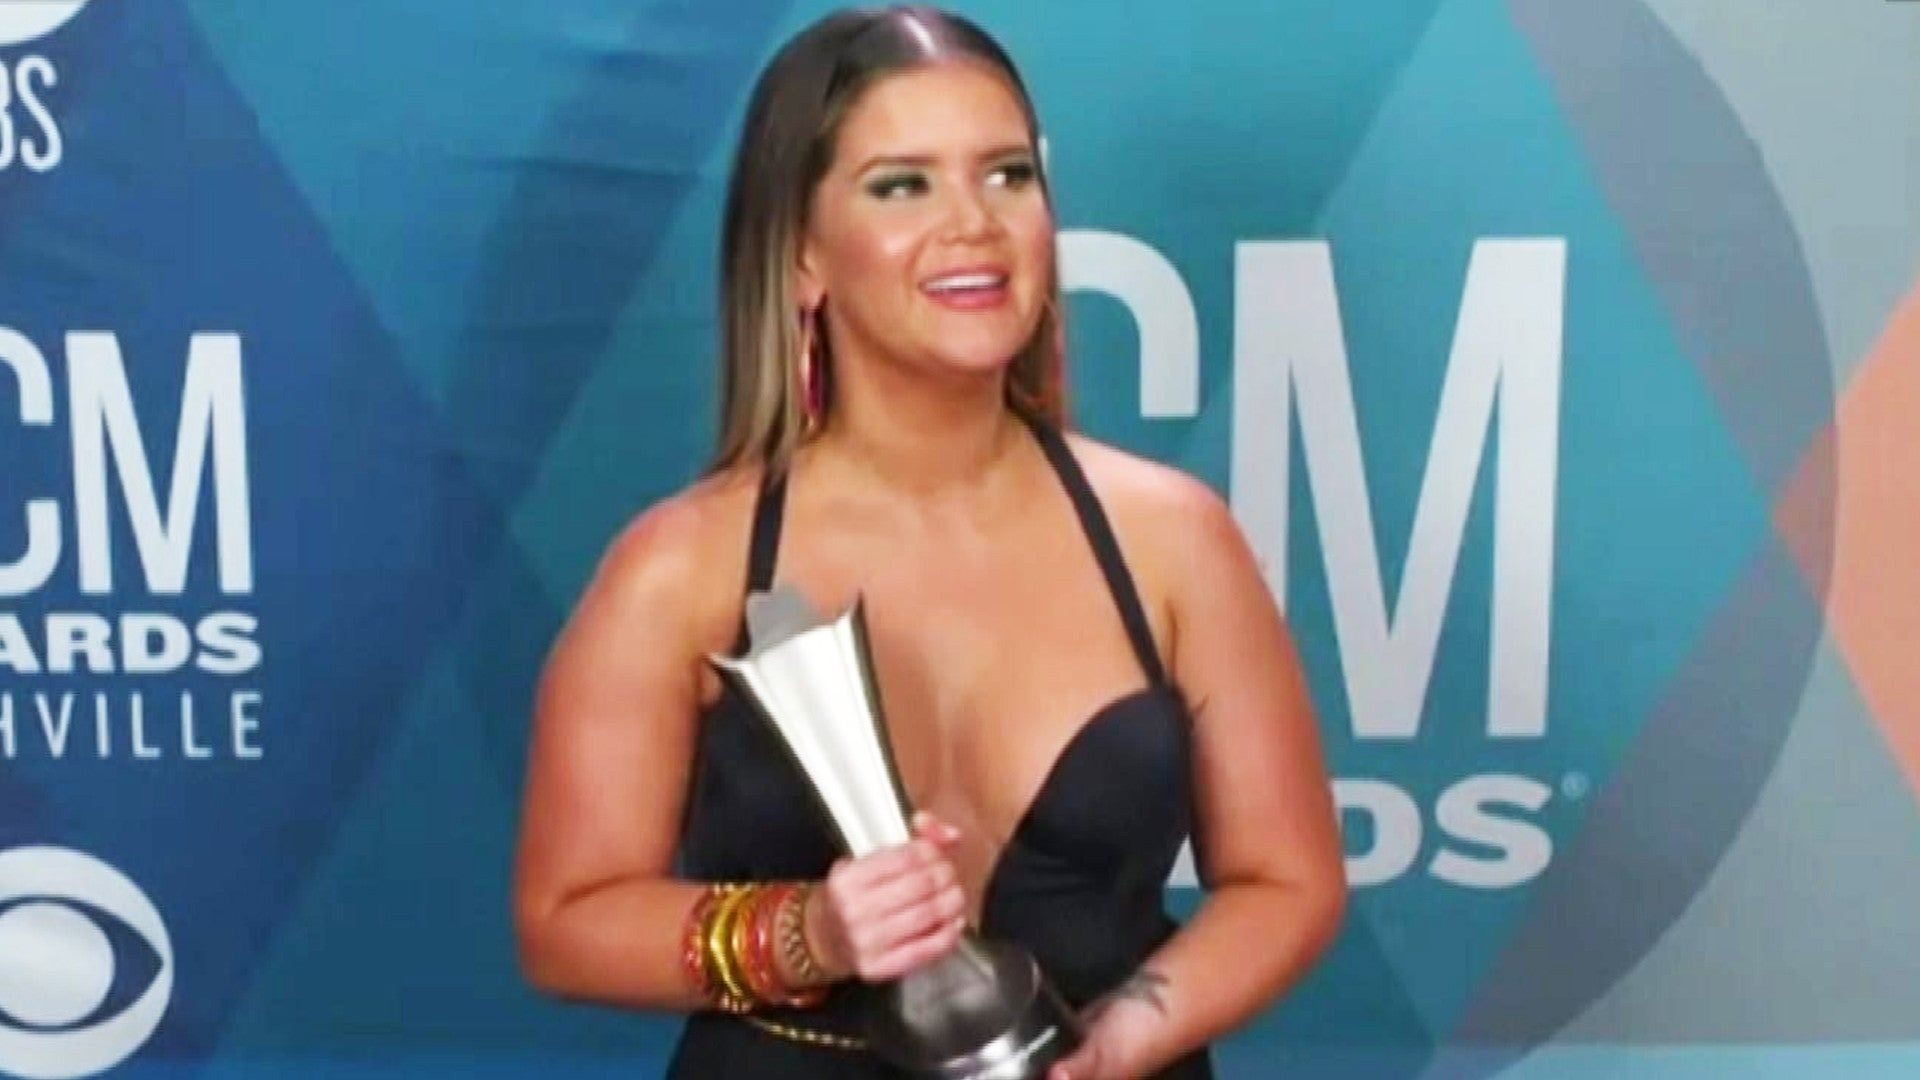 2020 Acm Awards The Complete Winners List Entertainment Tonight